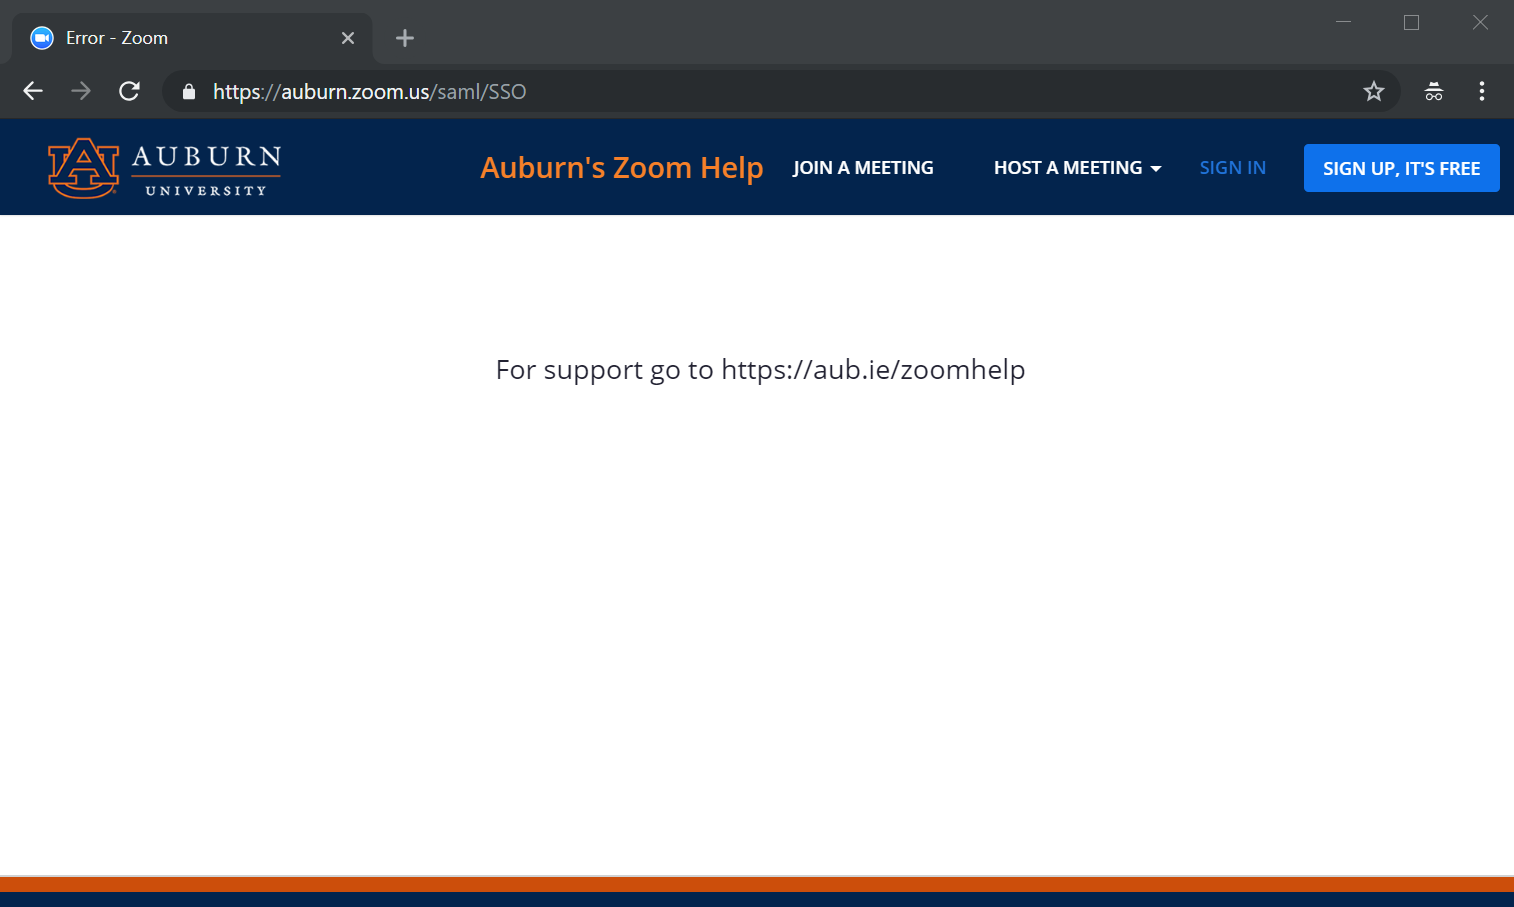 Zoom Error 1000 - the user is notified to contact support, because their account already exists